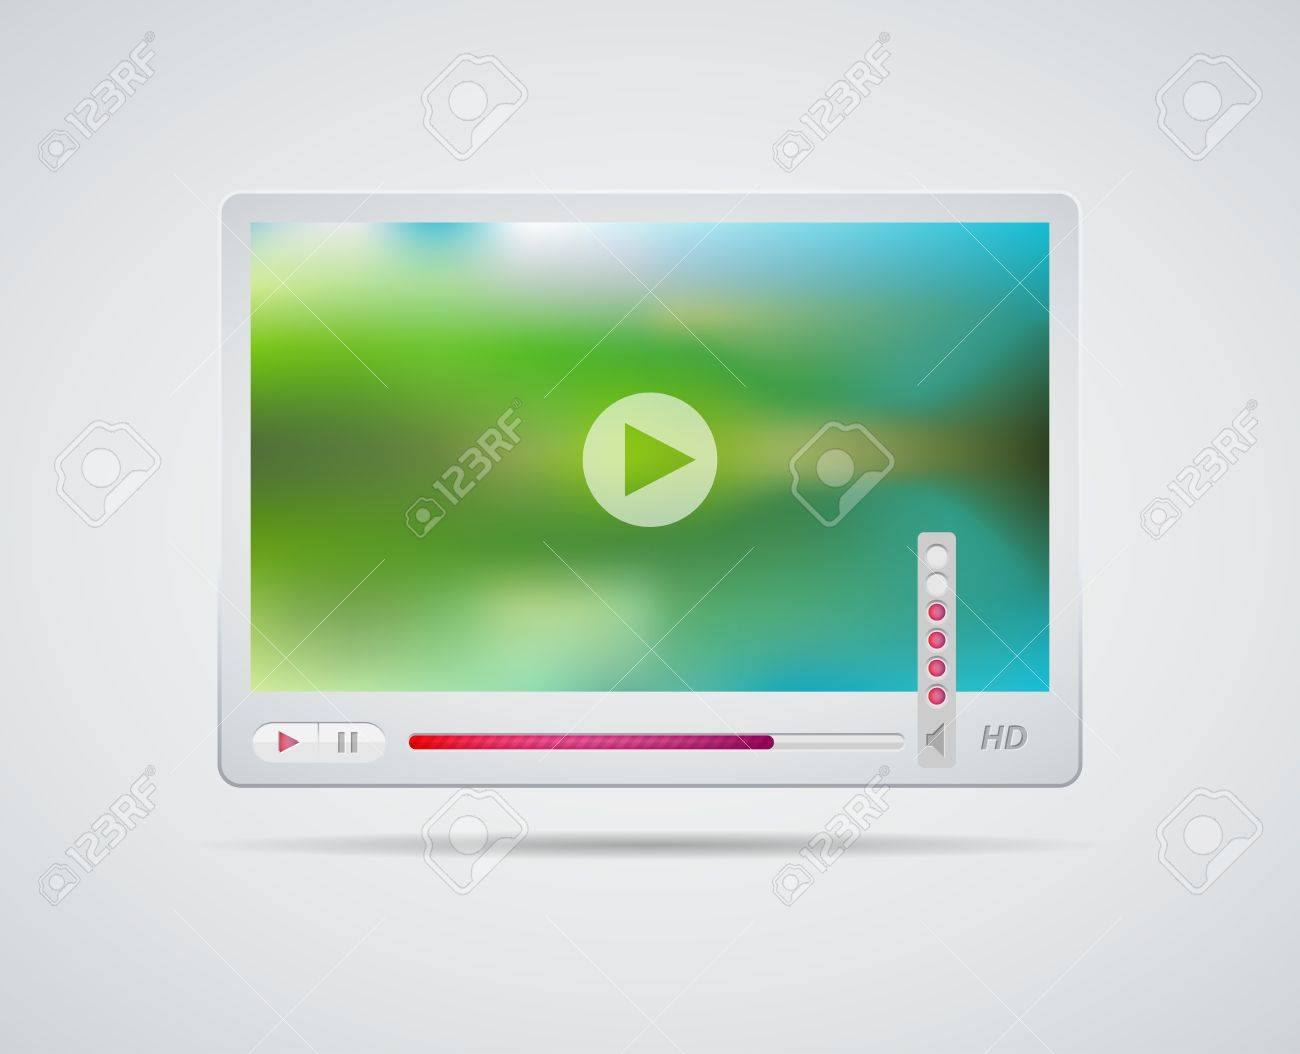 Video player interface. Vector illustration. Stock Vector - 15503581